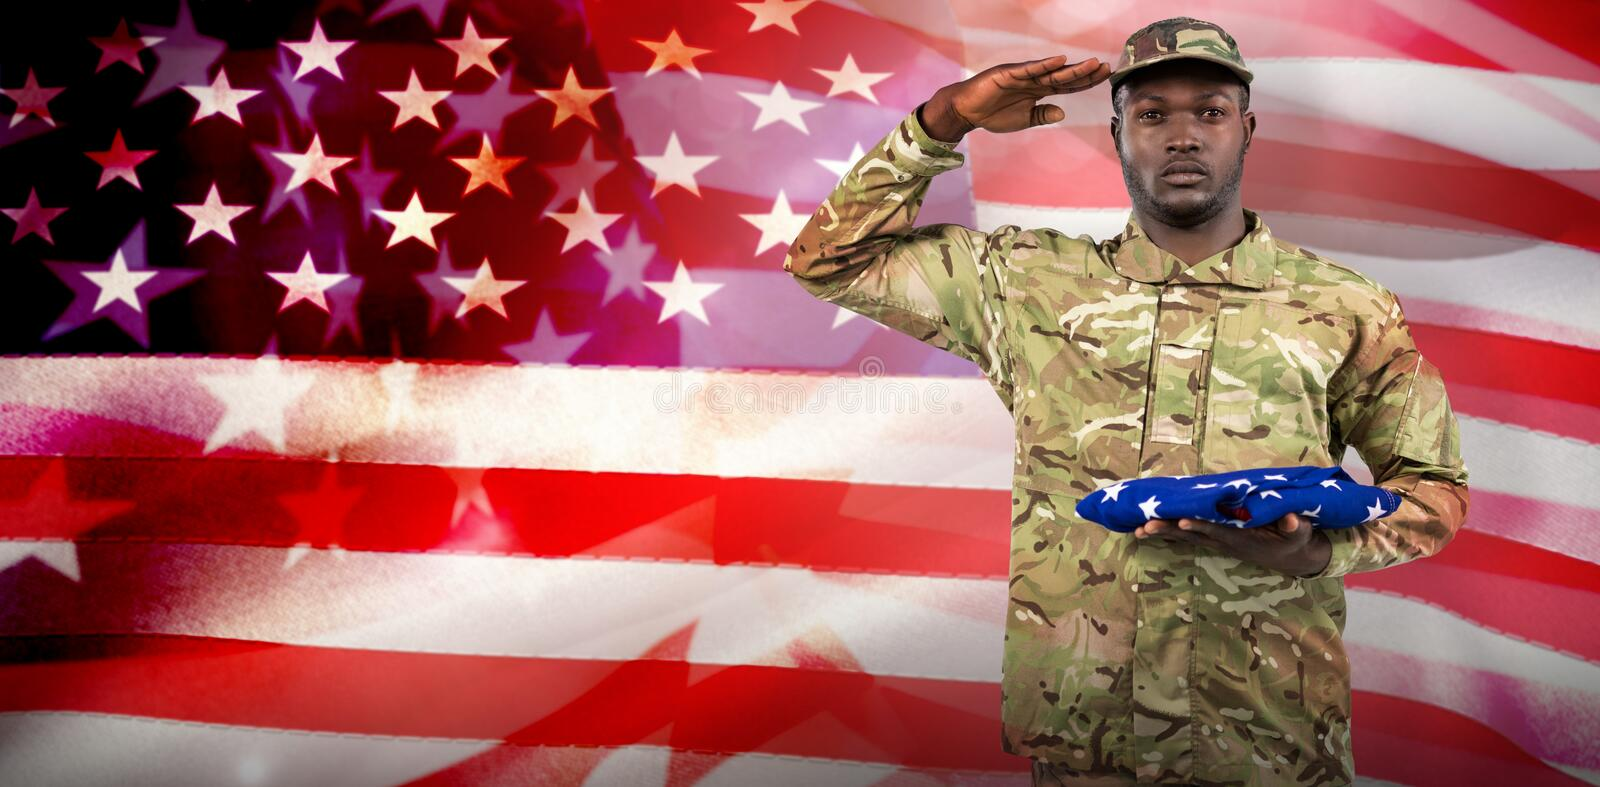 Composite image of portrait of soldier holding an american flag while stock image